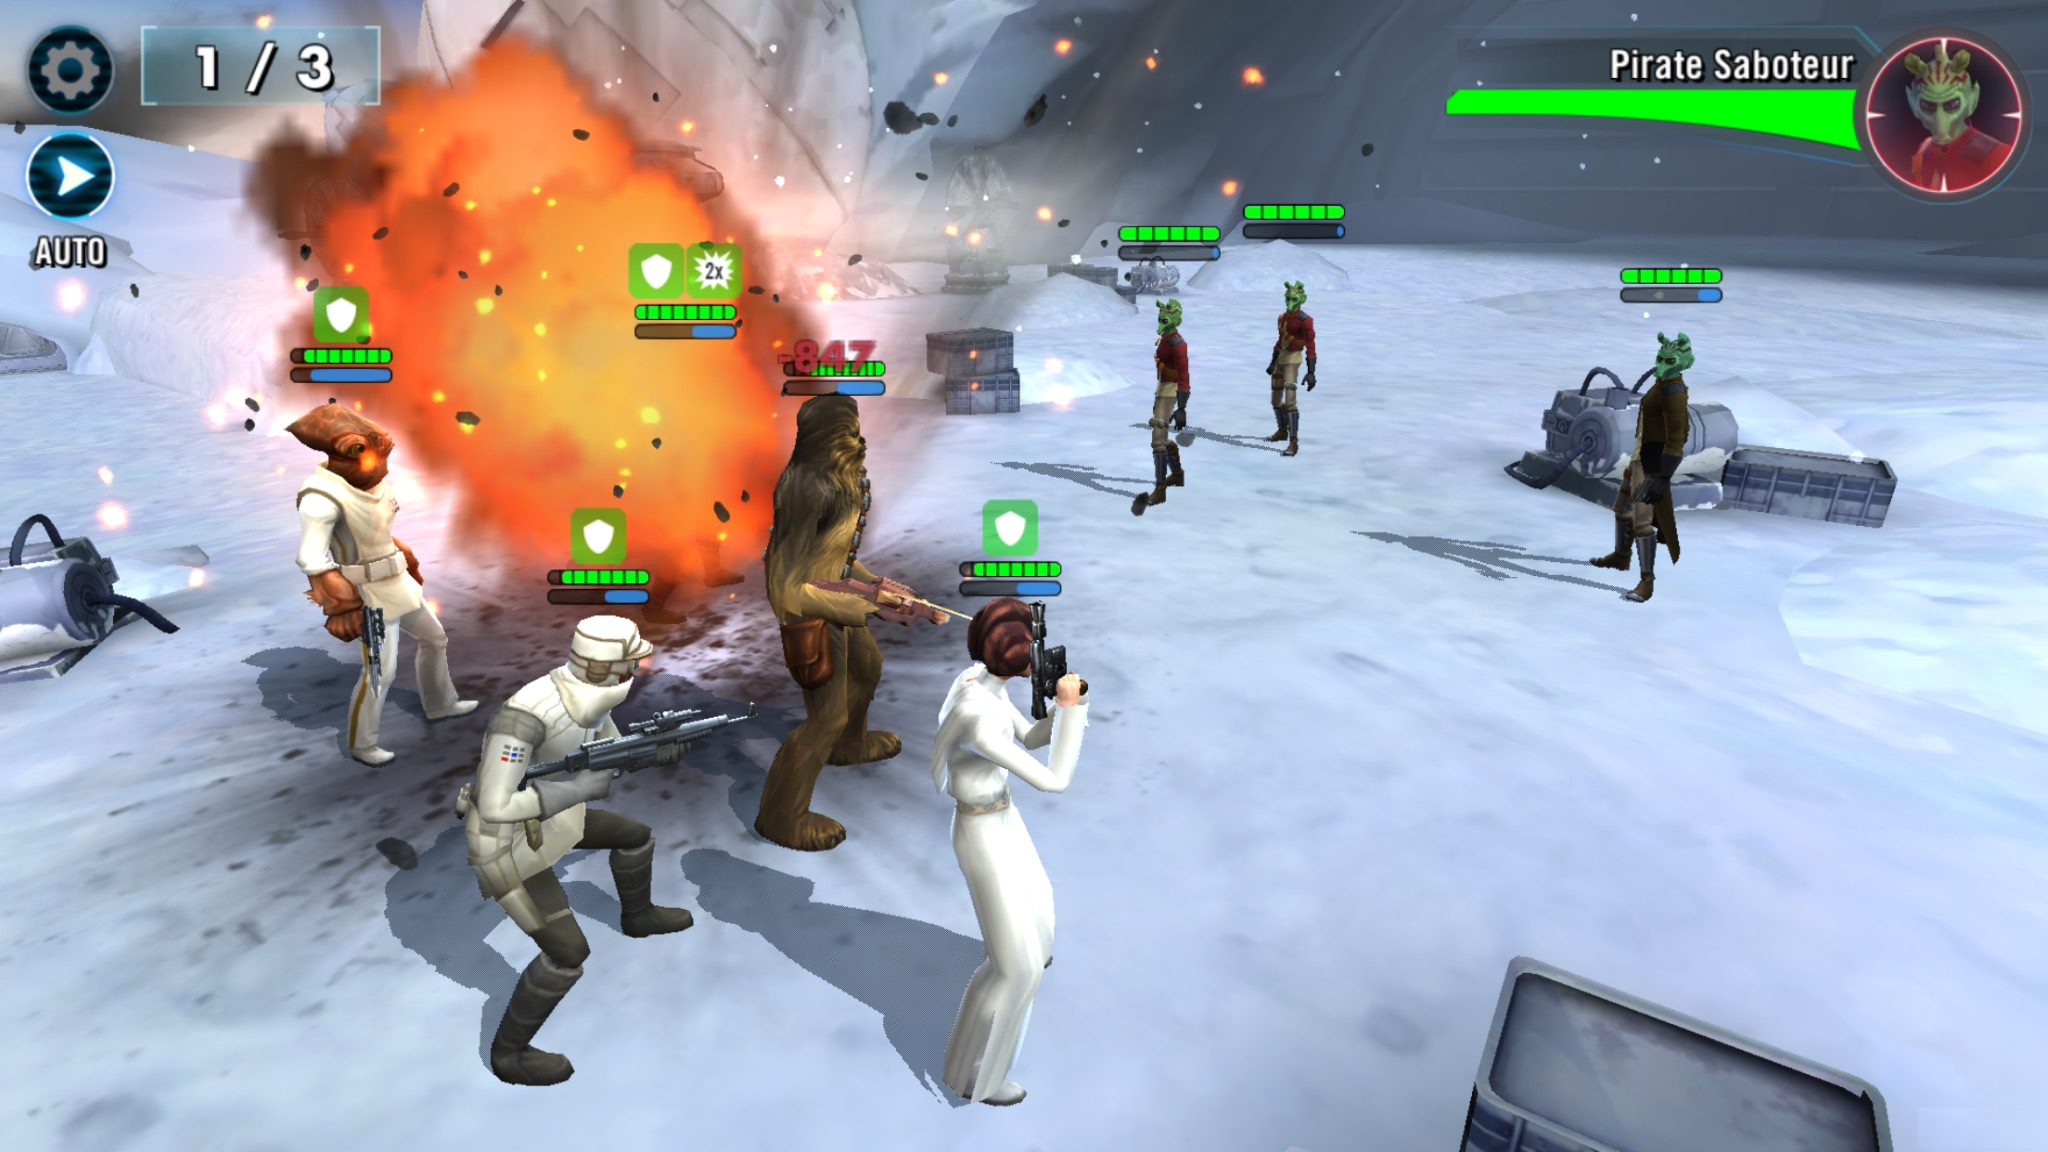 Admiral Ackbar, Chewbacca, Leia Organa, and a fourth teammate battling a group of Rodian pirates